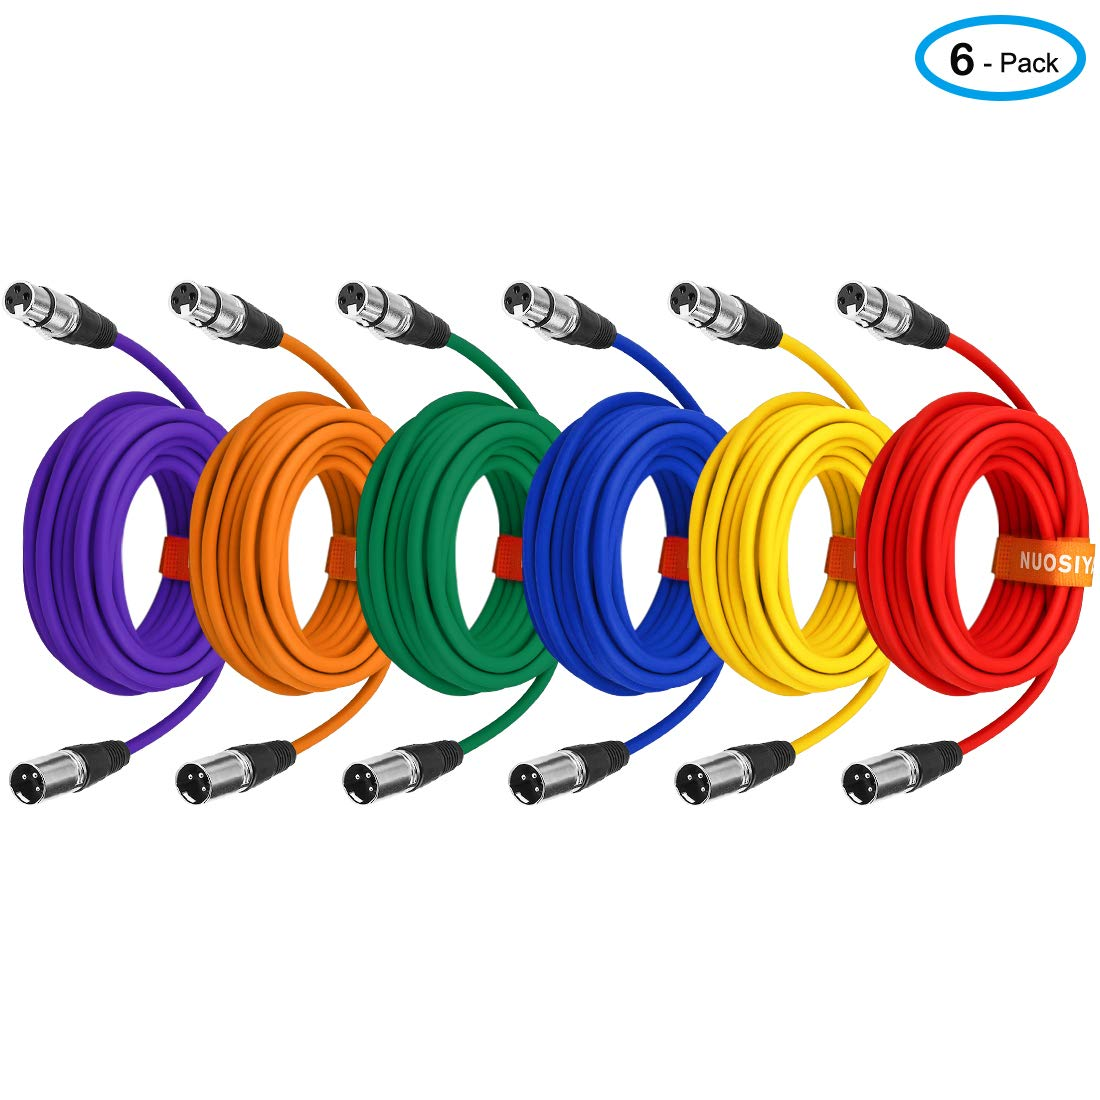 NUOSIYA Colored Microphone Patch Cable 25 feet, XLR Male to Female mic Cables(6-Pack), 3 pin Double Shielded Balanced DMX Cables/XLR Cables.